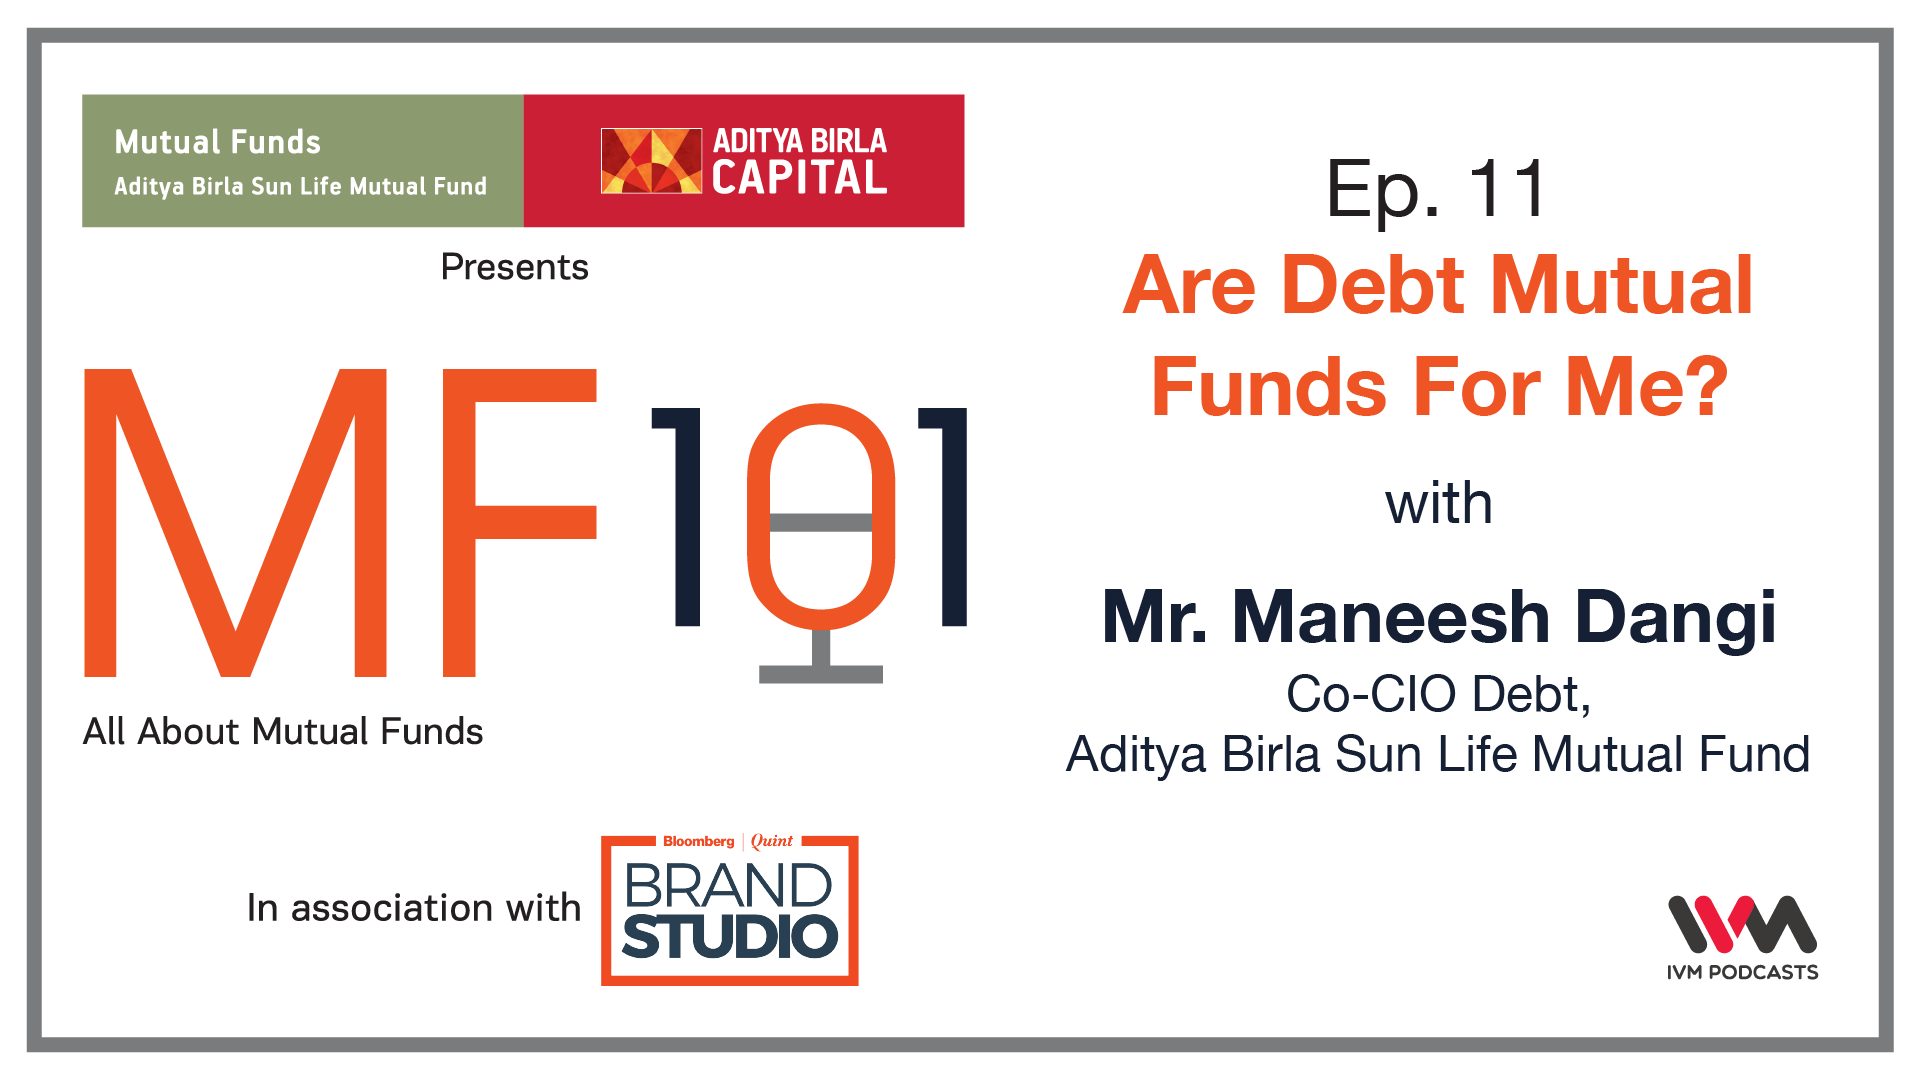 MutualFunds — MF101 — IVM Podcasts - Indian Podcasts for you